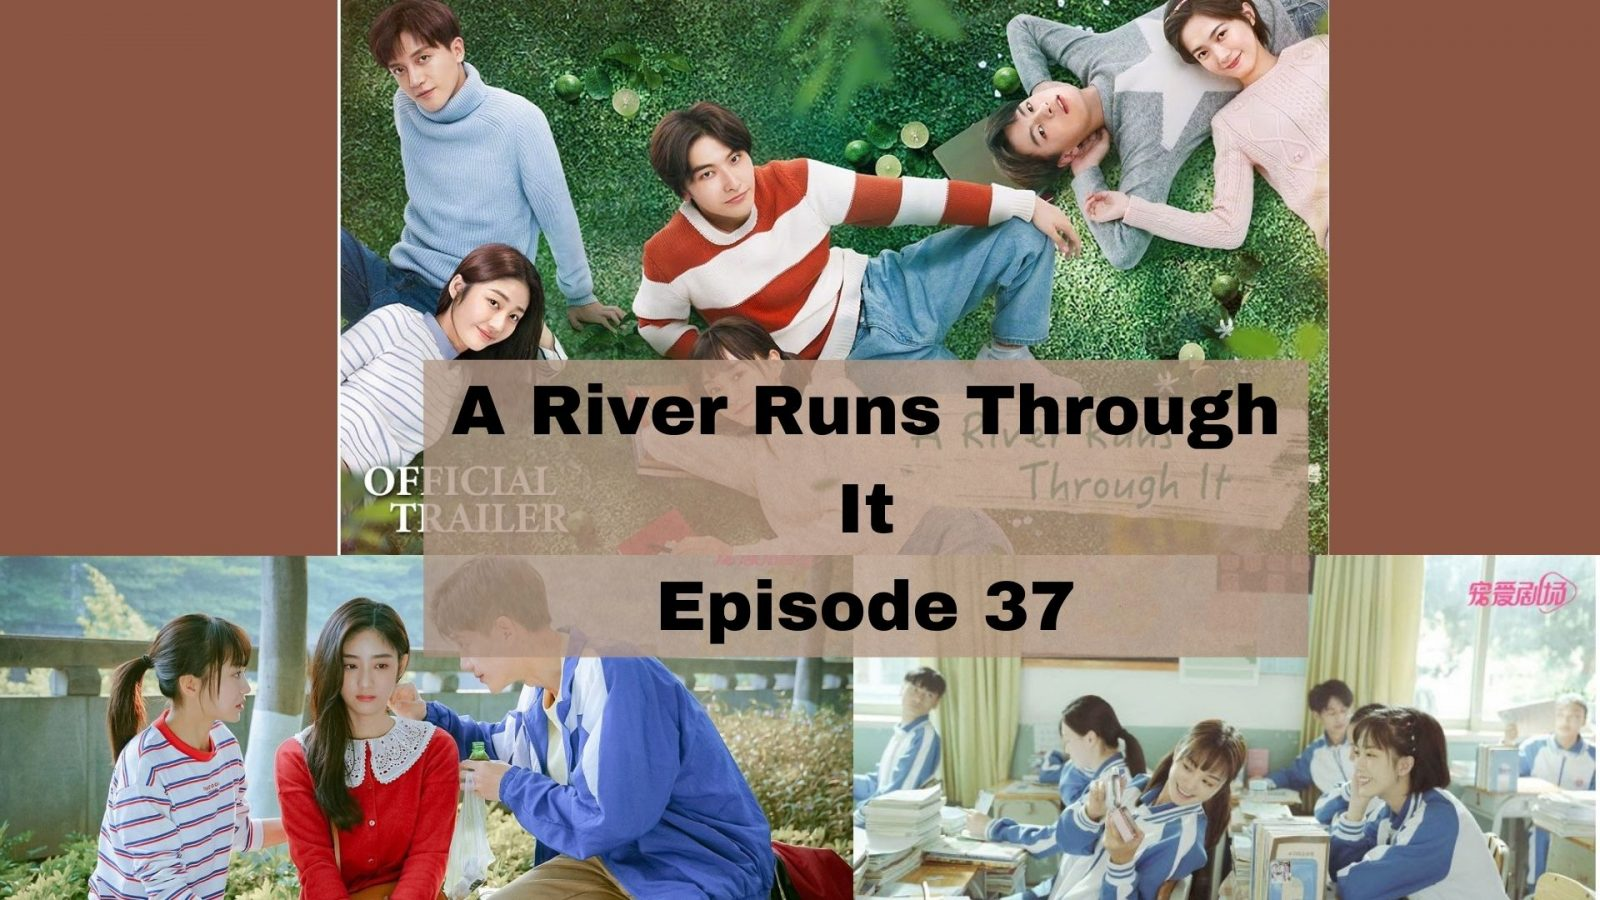 A River Runs Through It Episode 37: All You Need to Know!